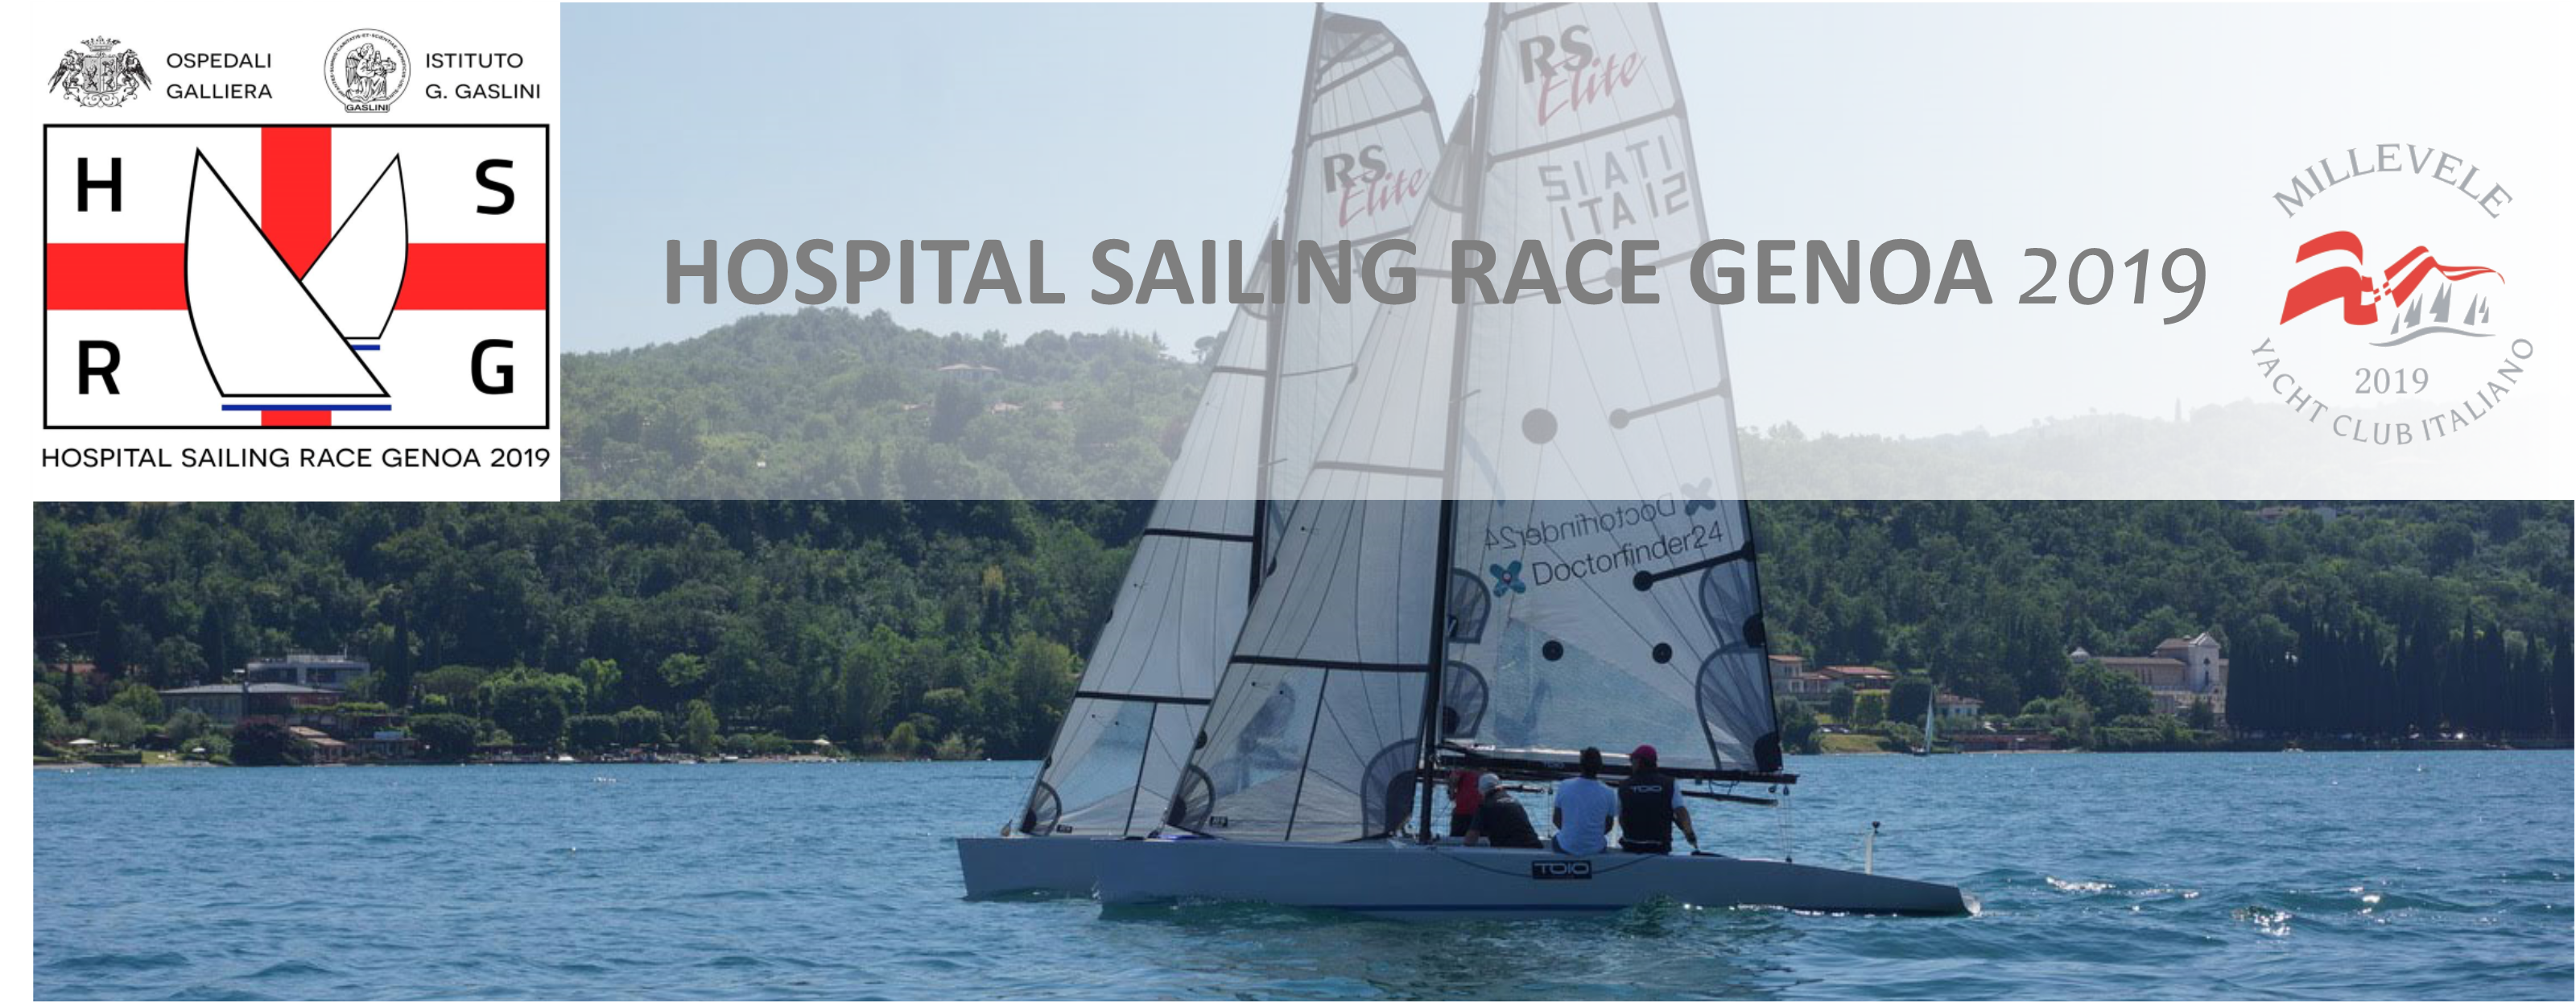 Hospital Sailing Race Genoa 2019